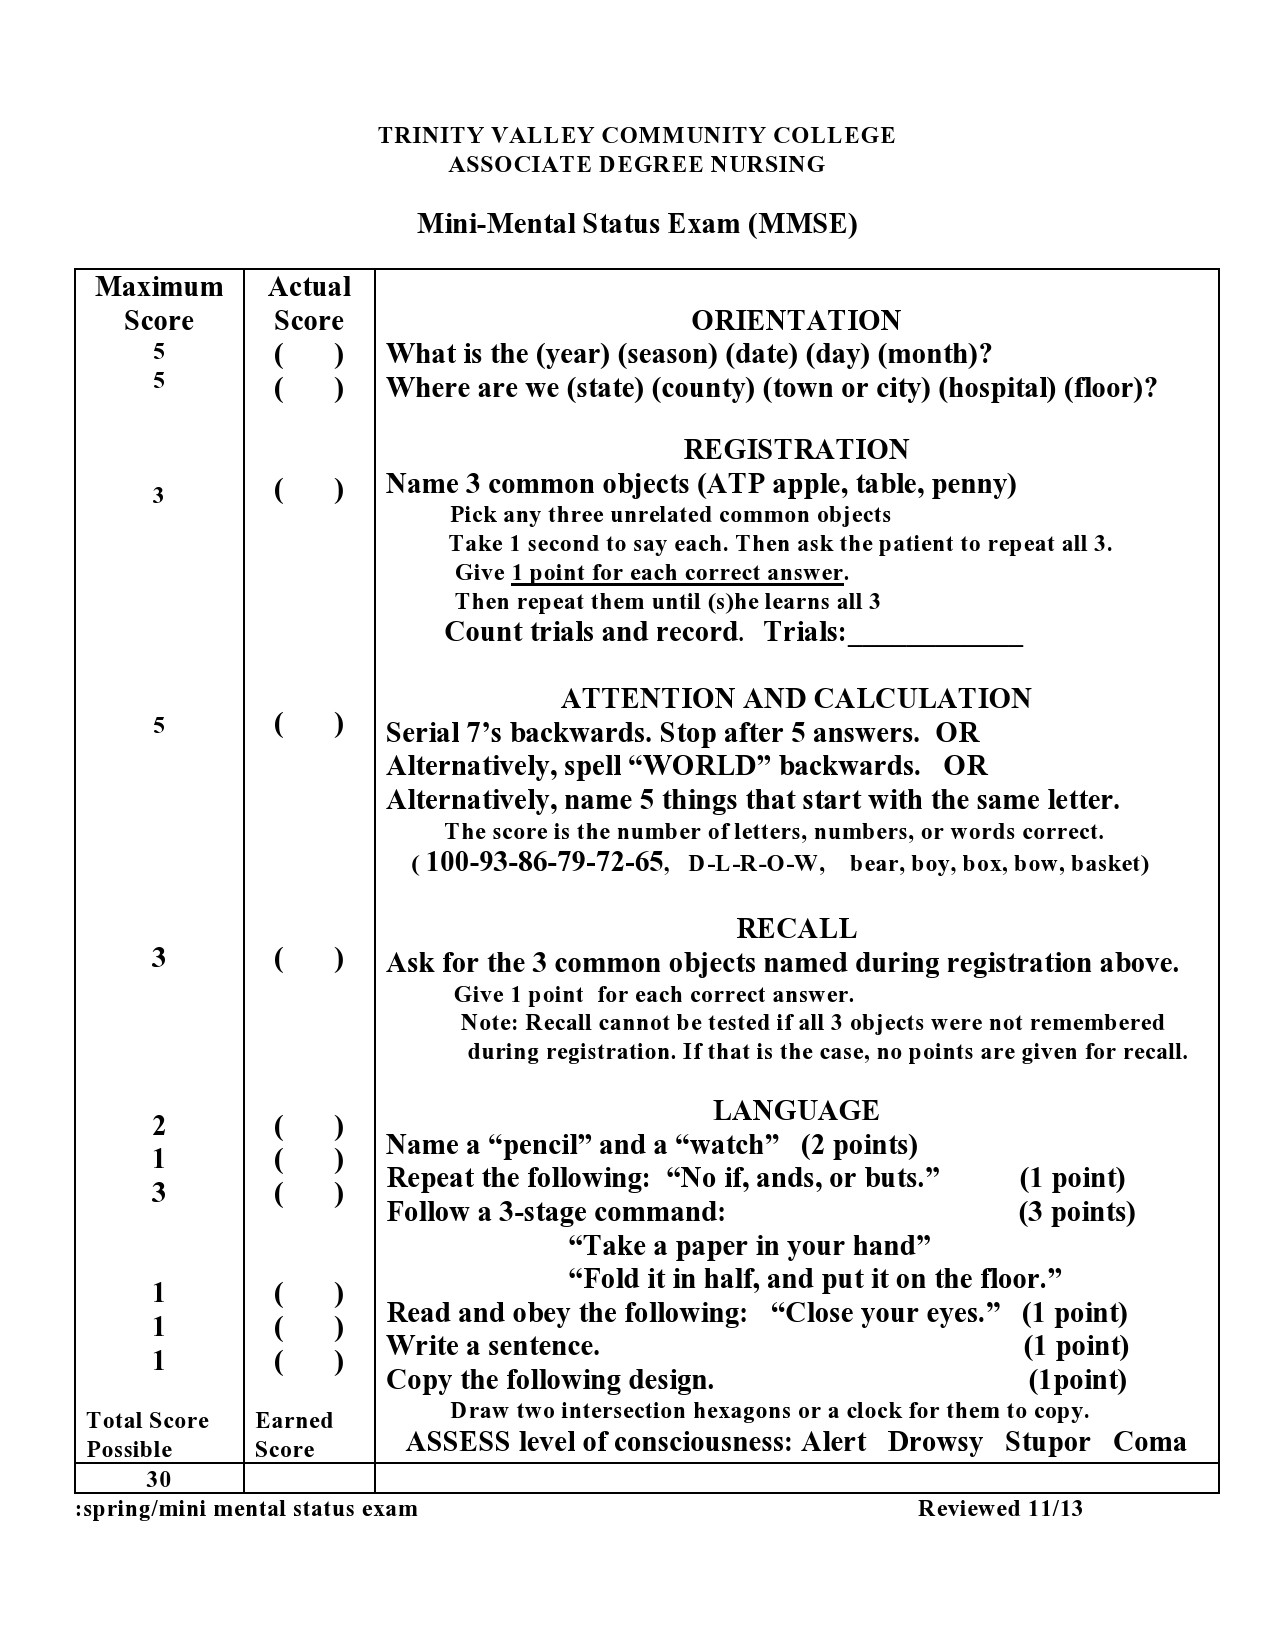 47 Free Mental Status Exam Templates (MSE Examples) ᐅ ...